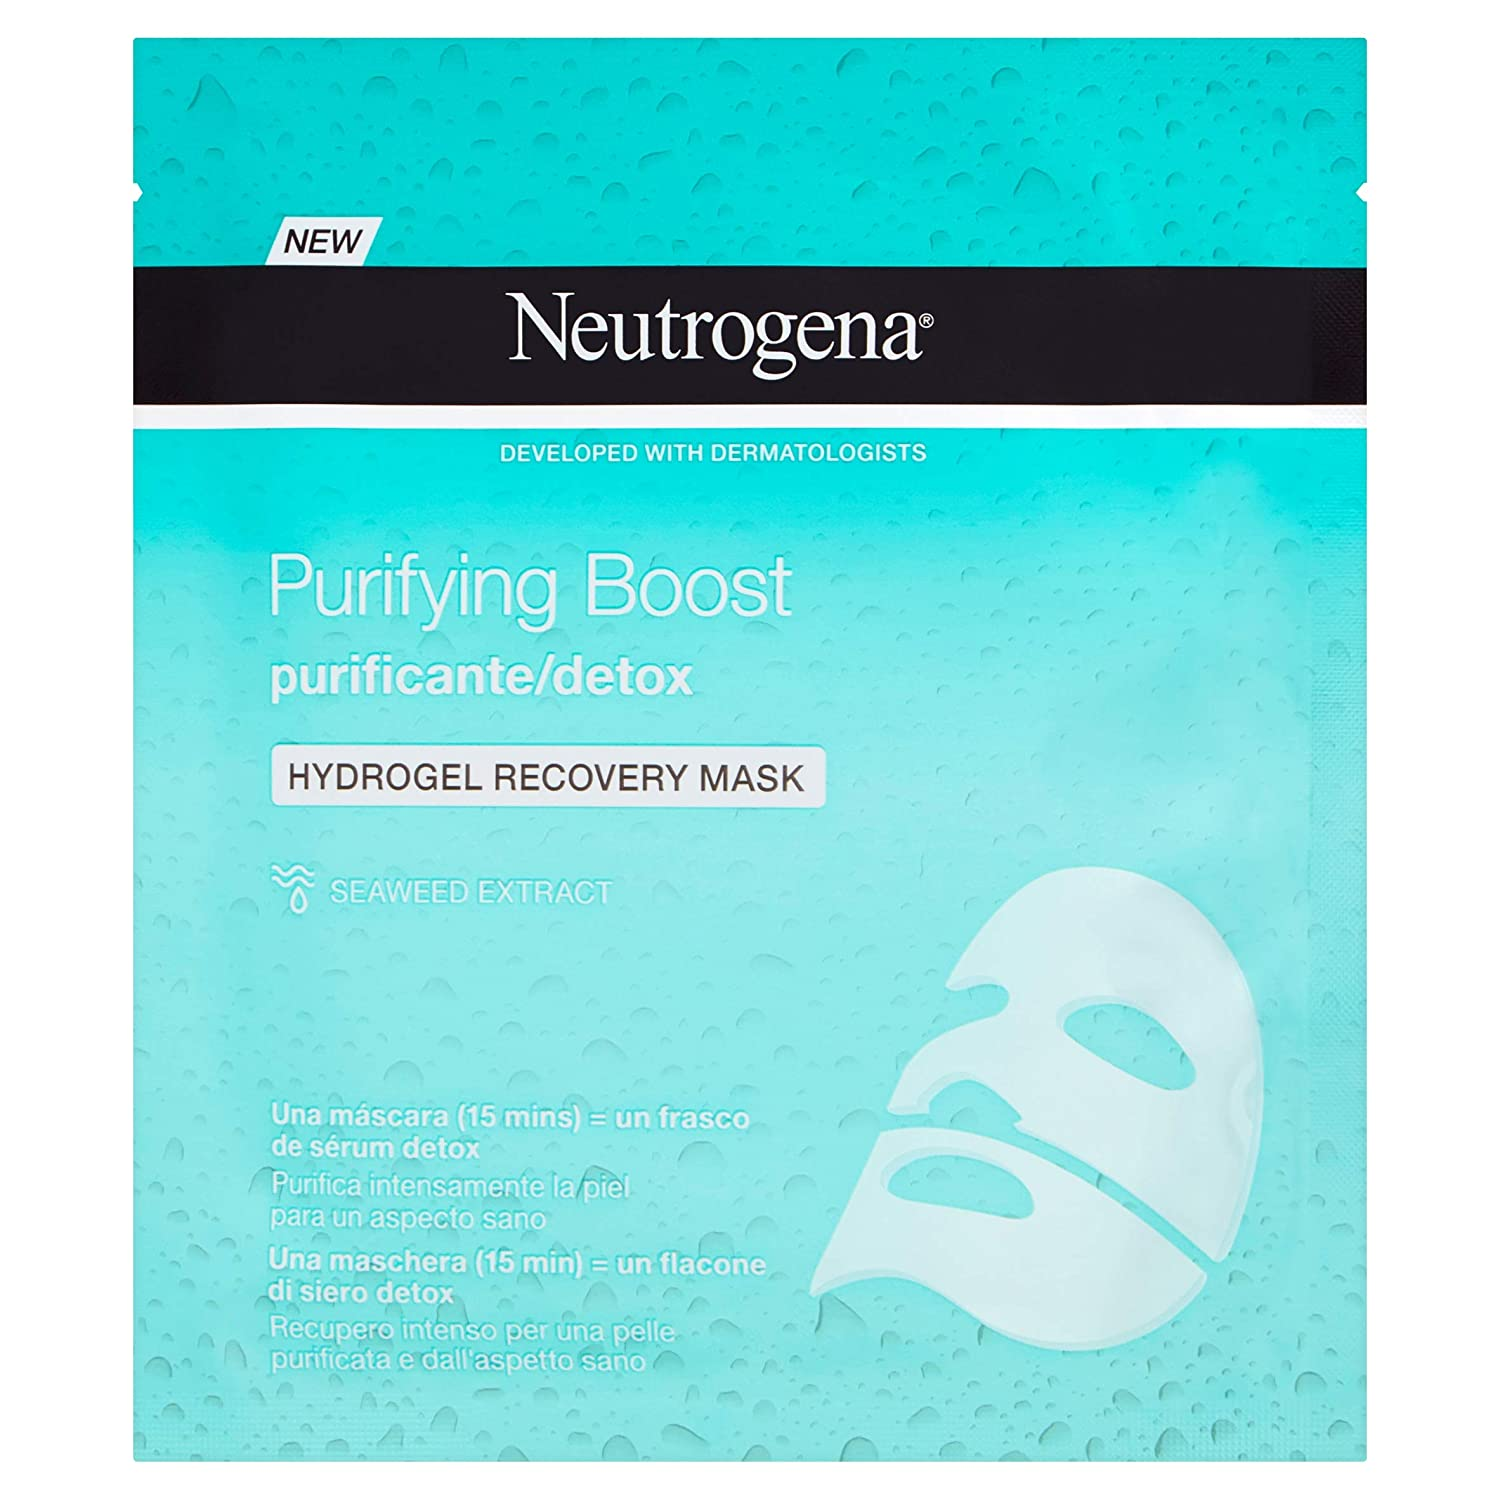 Neutrogena Hydrogel Mascarilla Purificante (3 Recipientes De 30 ml ...